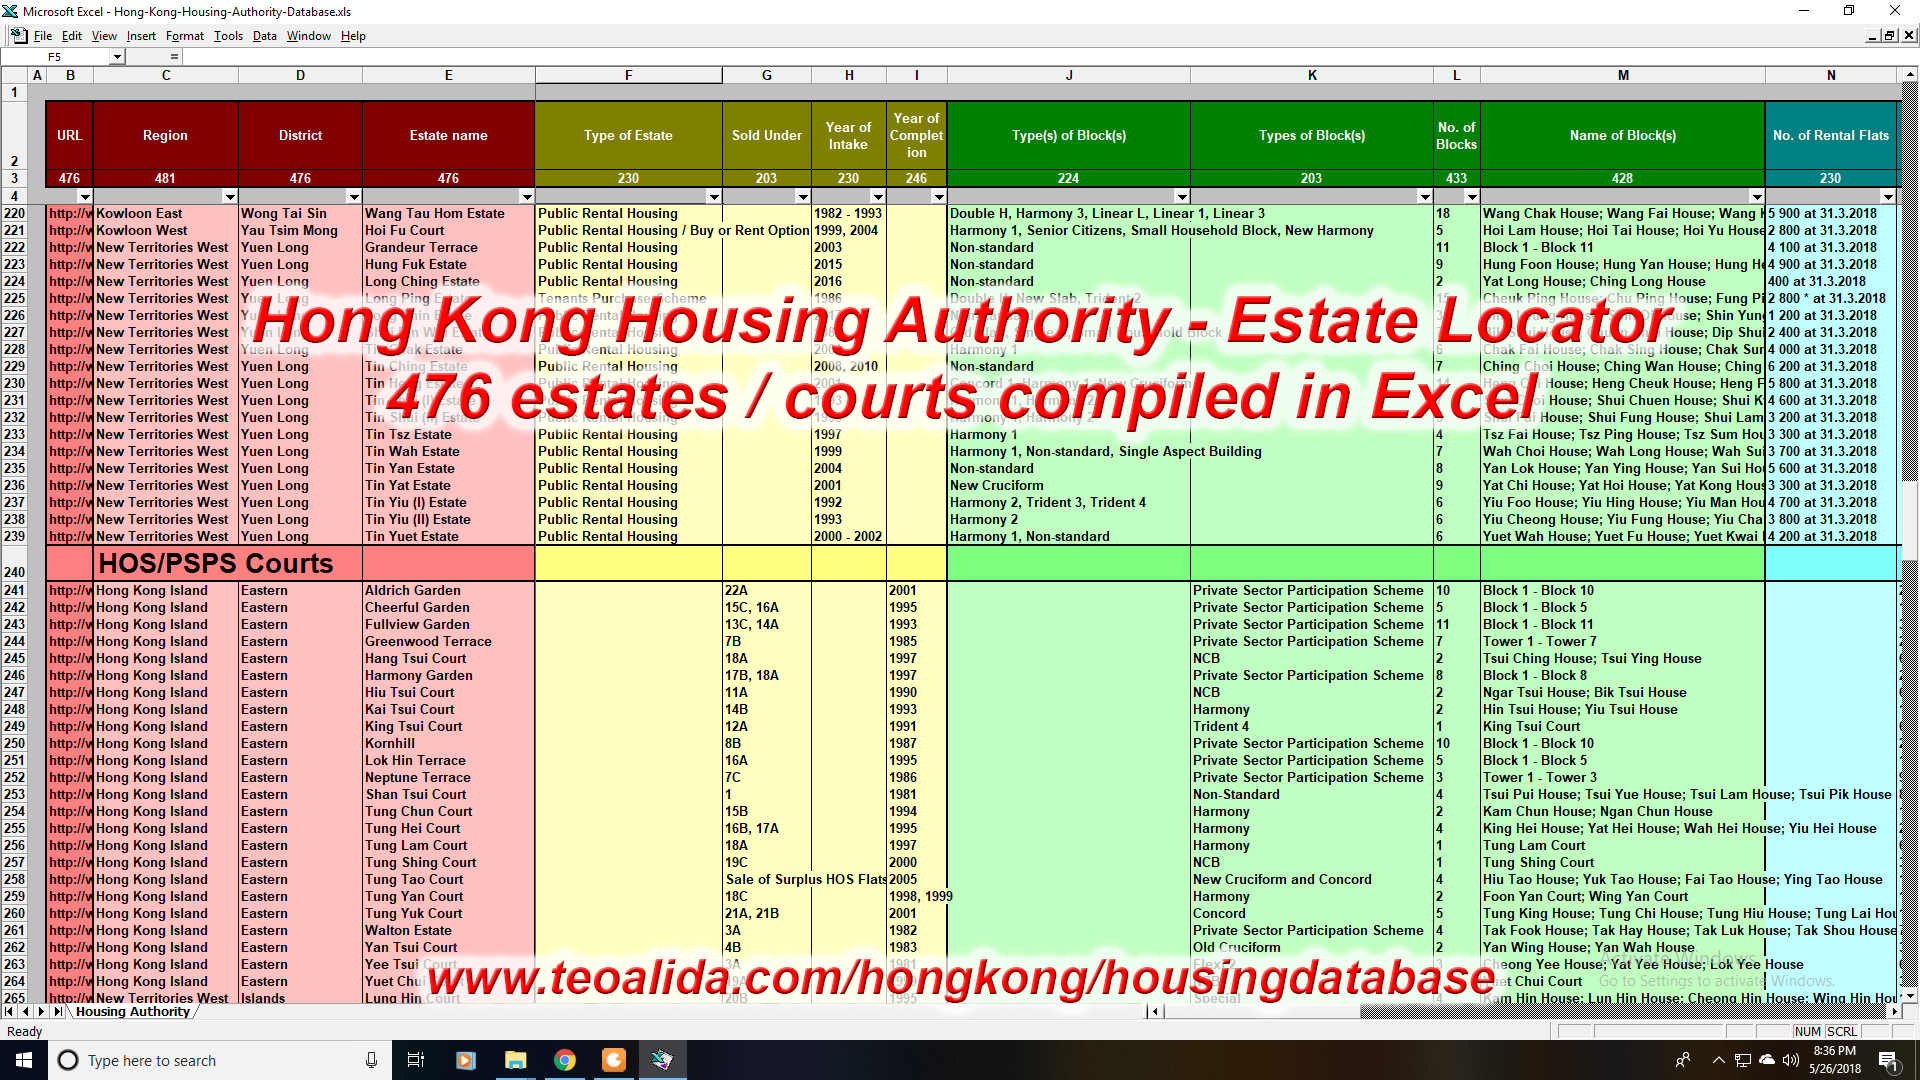 Hong Kong Housing Authority Database